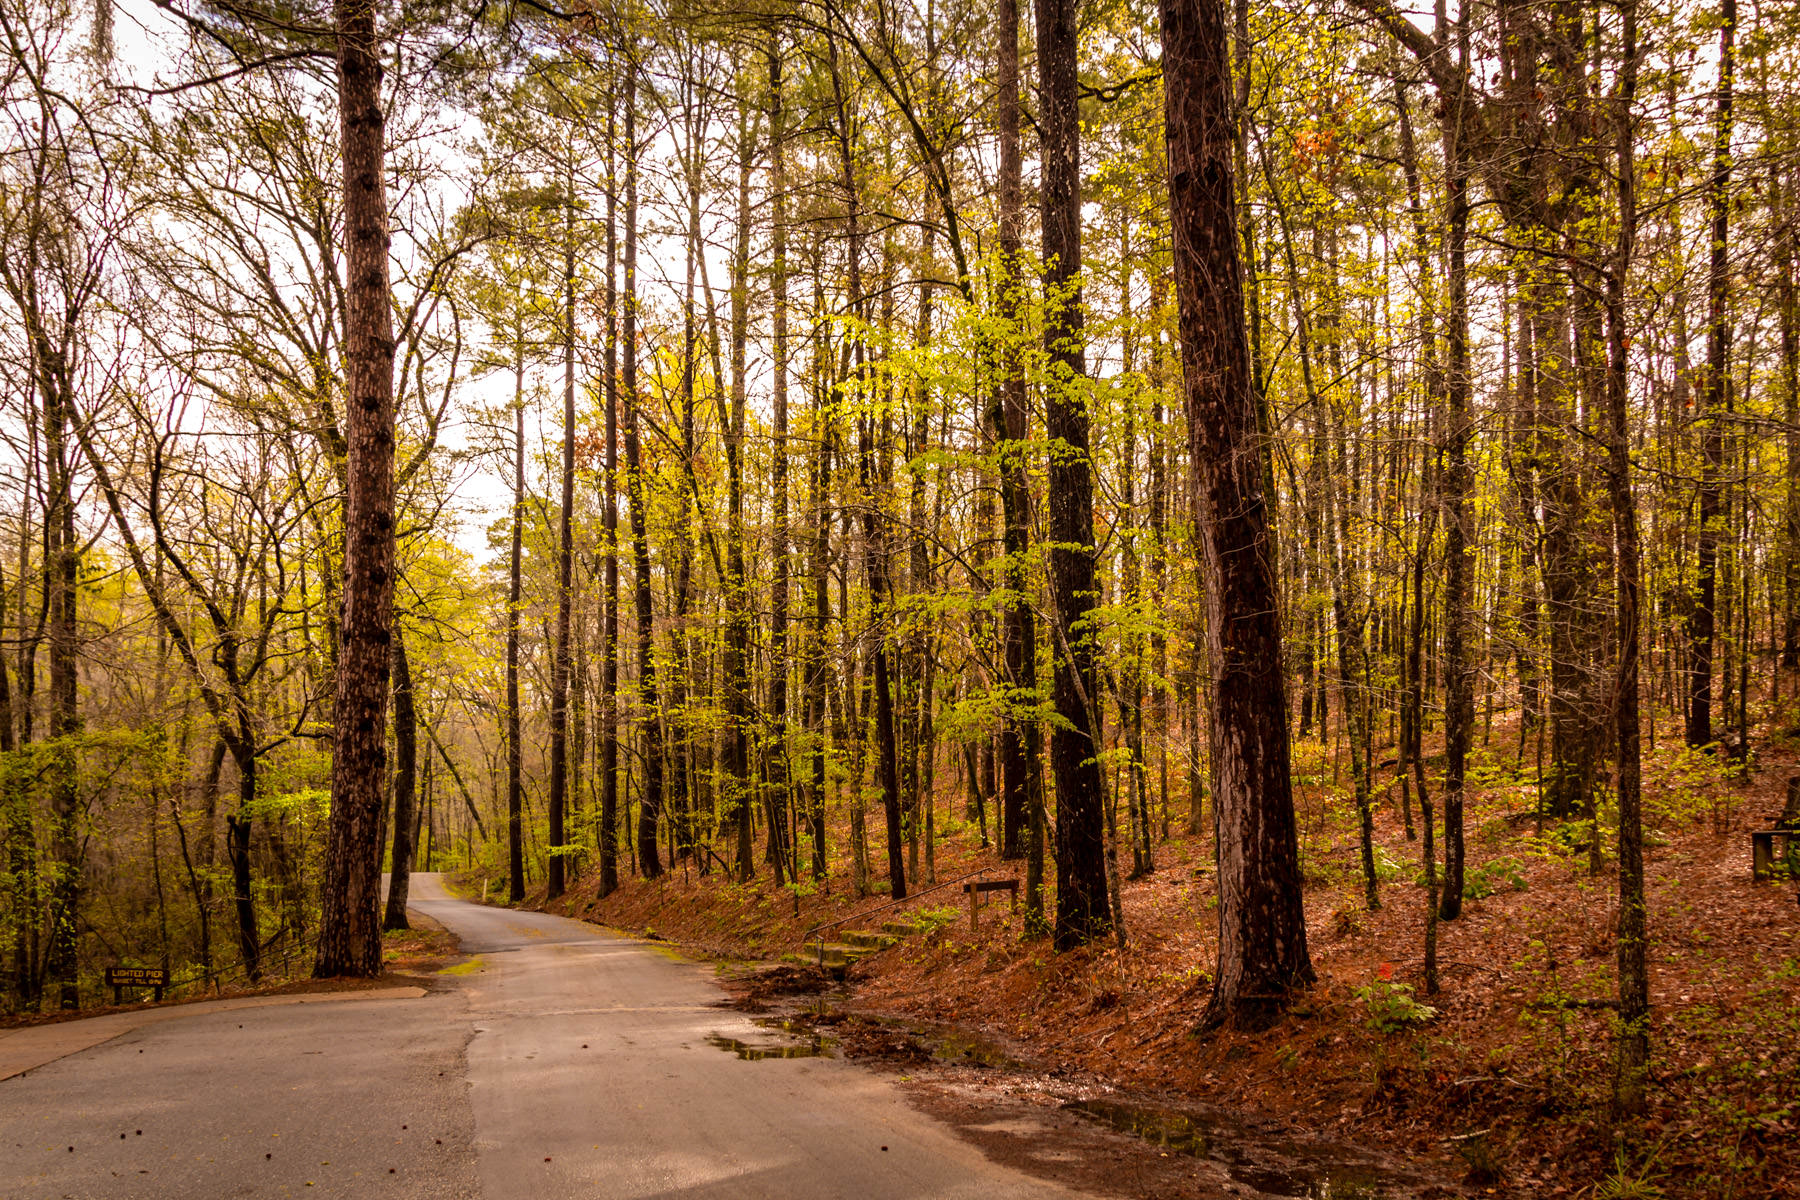 A road among the trees at Caddo Lake State Park, Texas.